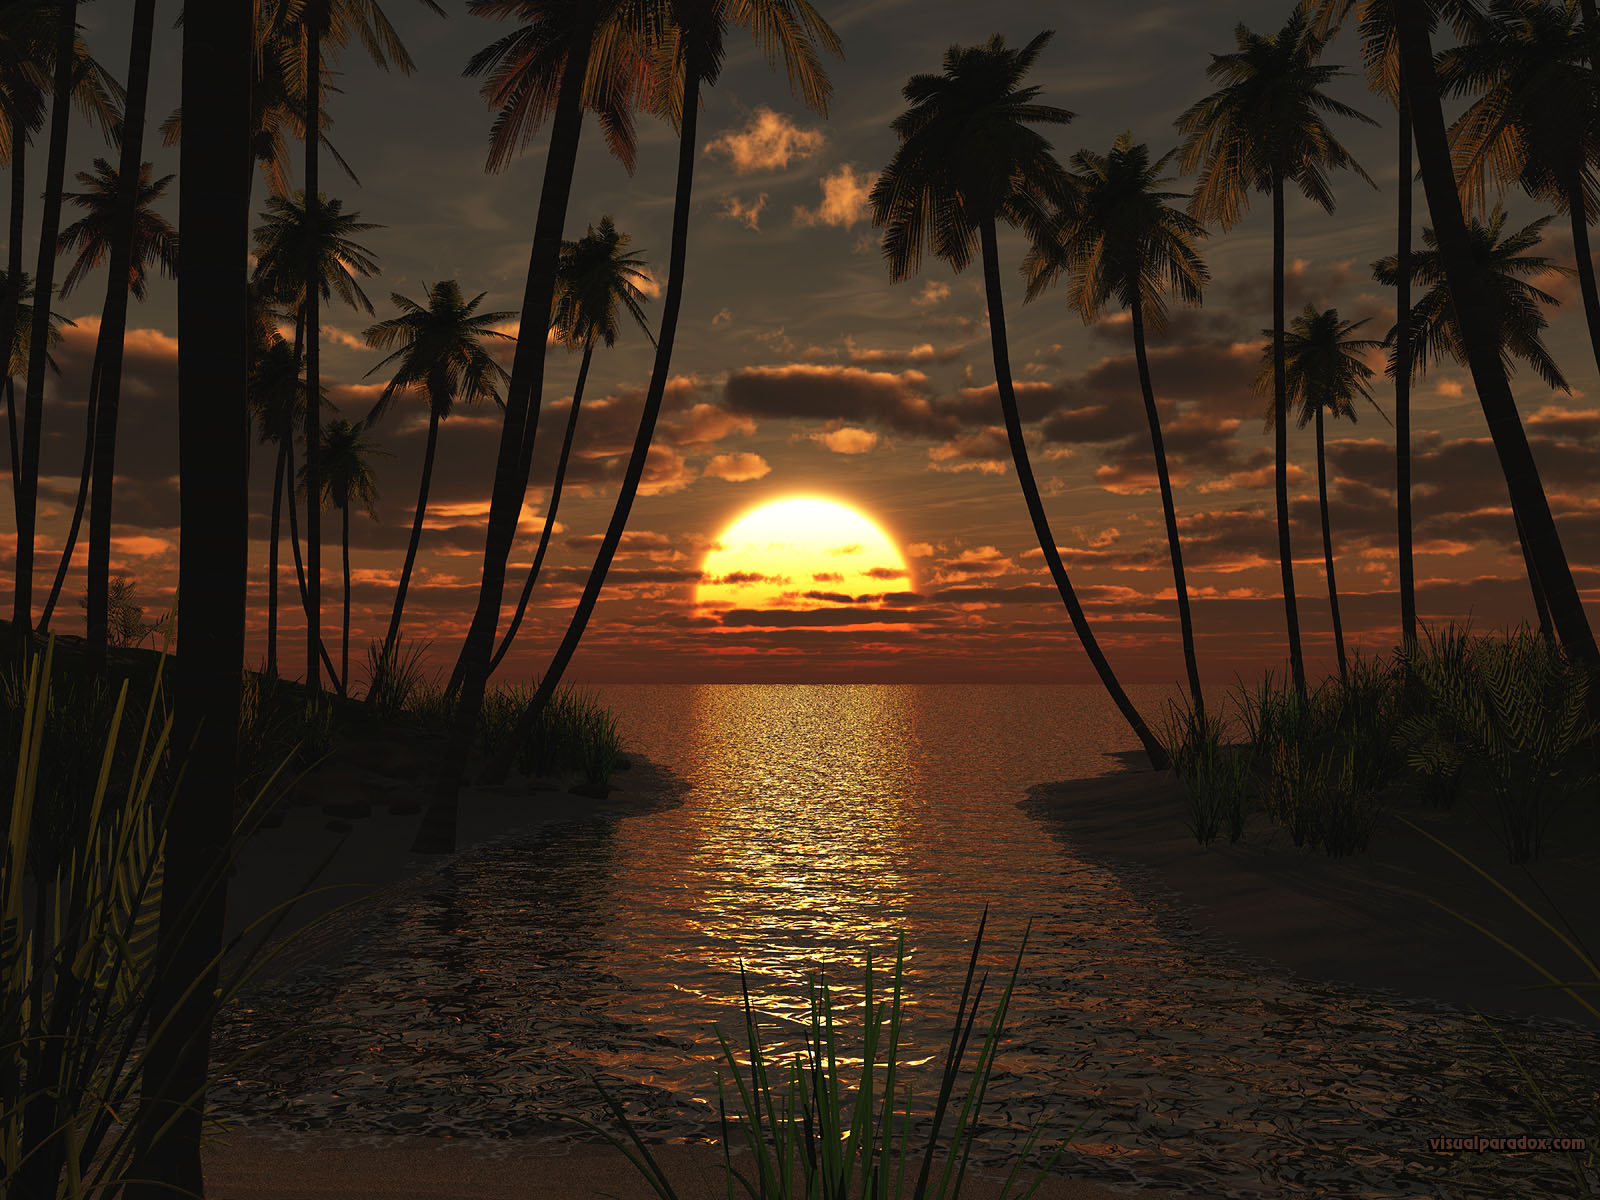 sunset, palms, ocean, water, waves, deserted, sand, surf, sun, palm trees, cove, inlet, beaches, 3d, wallpaper